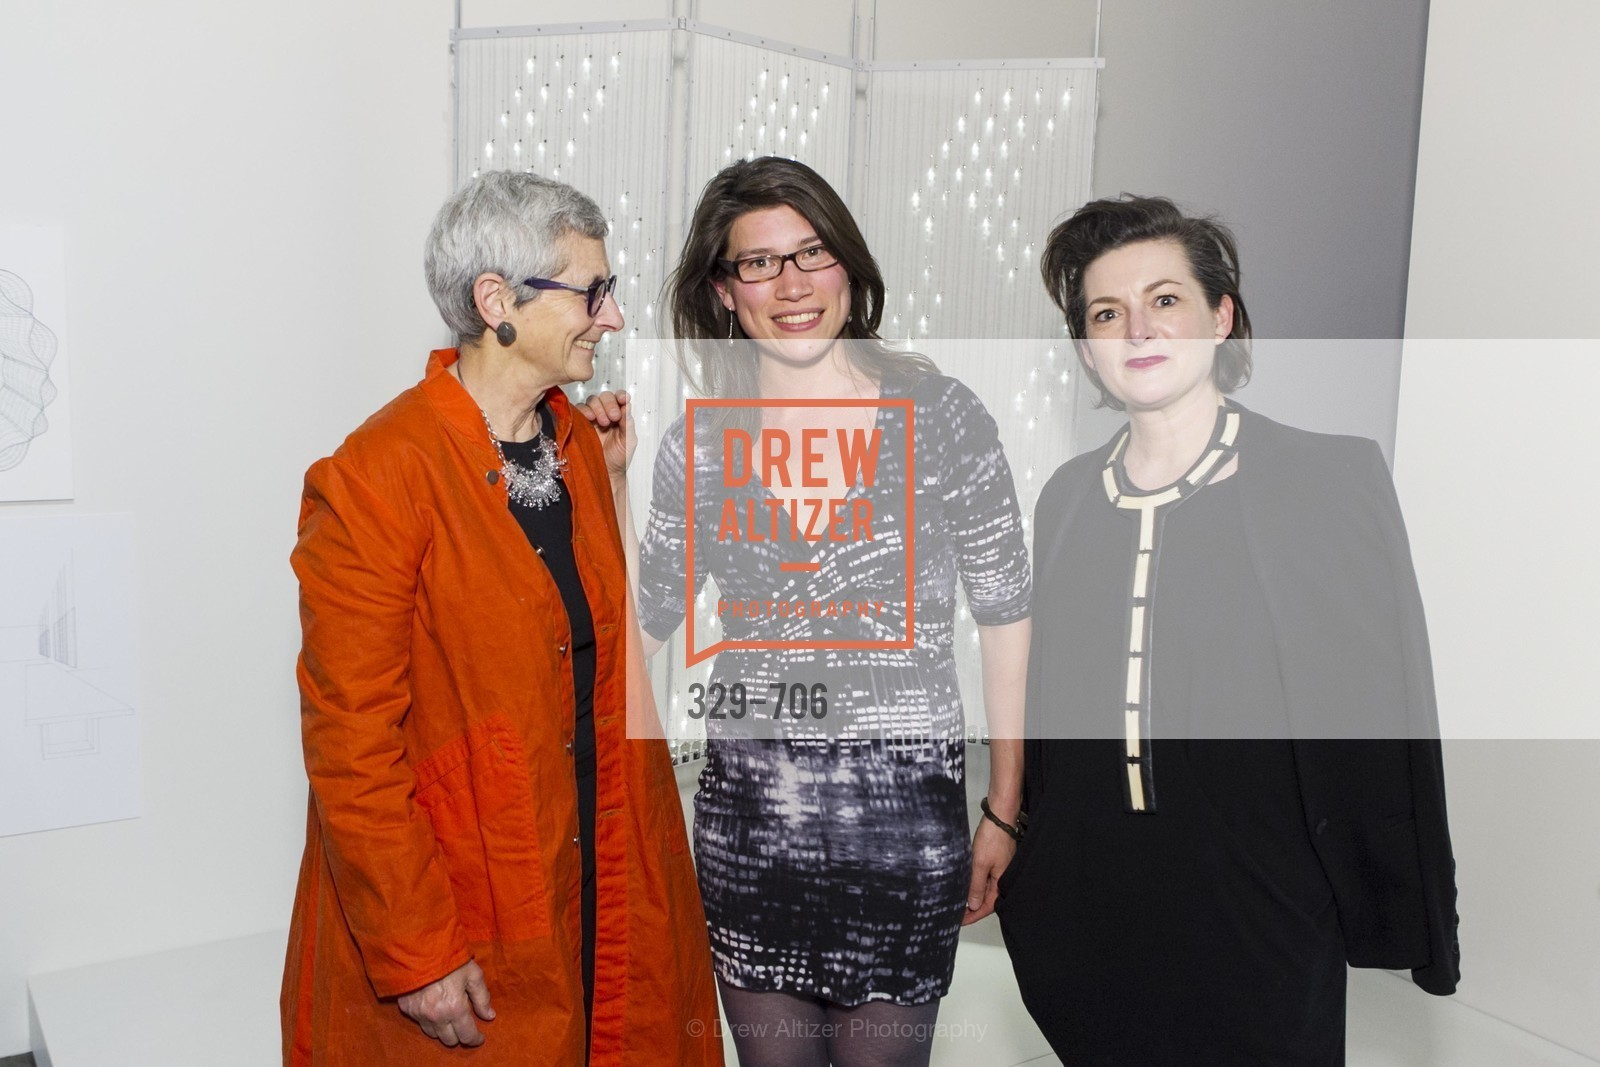 Marion Brenner, Aoife Wullur, Alisa Carroll, Exhibit Opening at the MUSEUM OF CRAFT AND DESIGN - Hands Off: New Dutch Design at the Confluence of Technology & Craft, US, May 8th, 2015,Drew Altizer, Drew Altizer Photography, full-service agency, private events, San Francisco photographer, photographer california